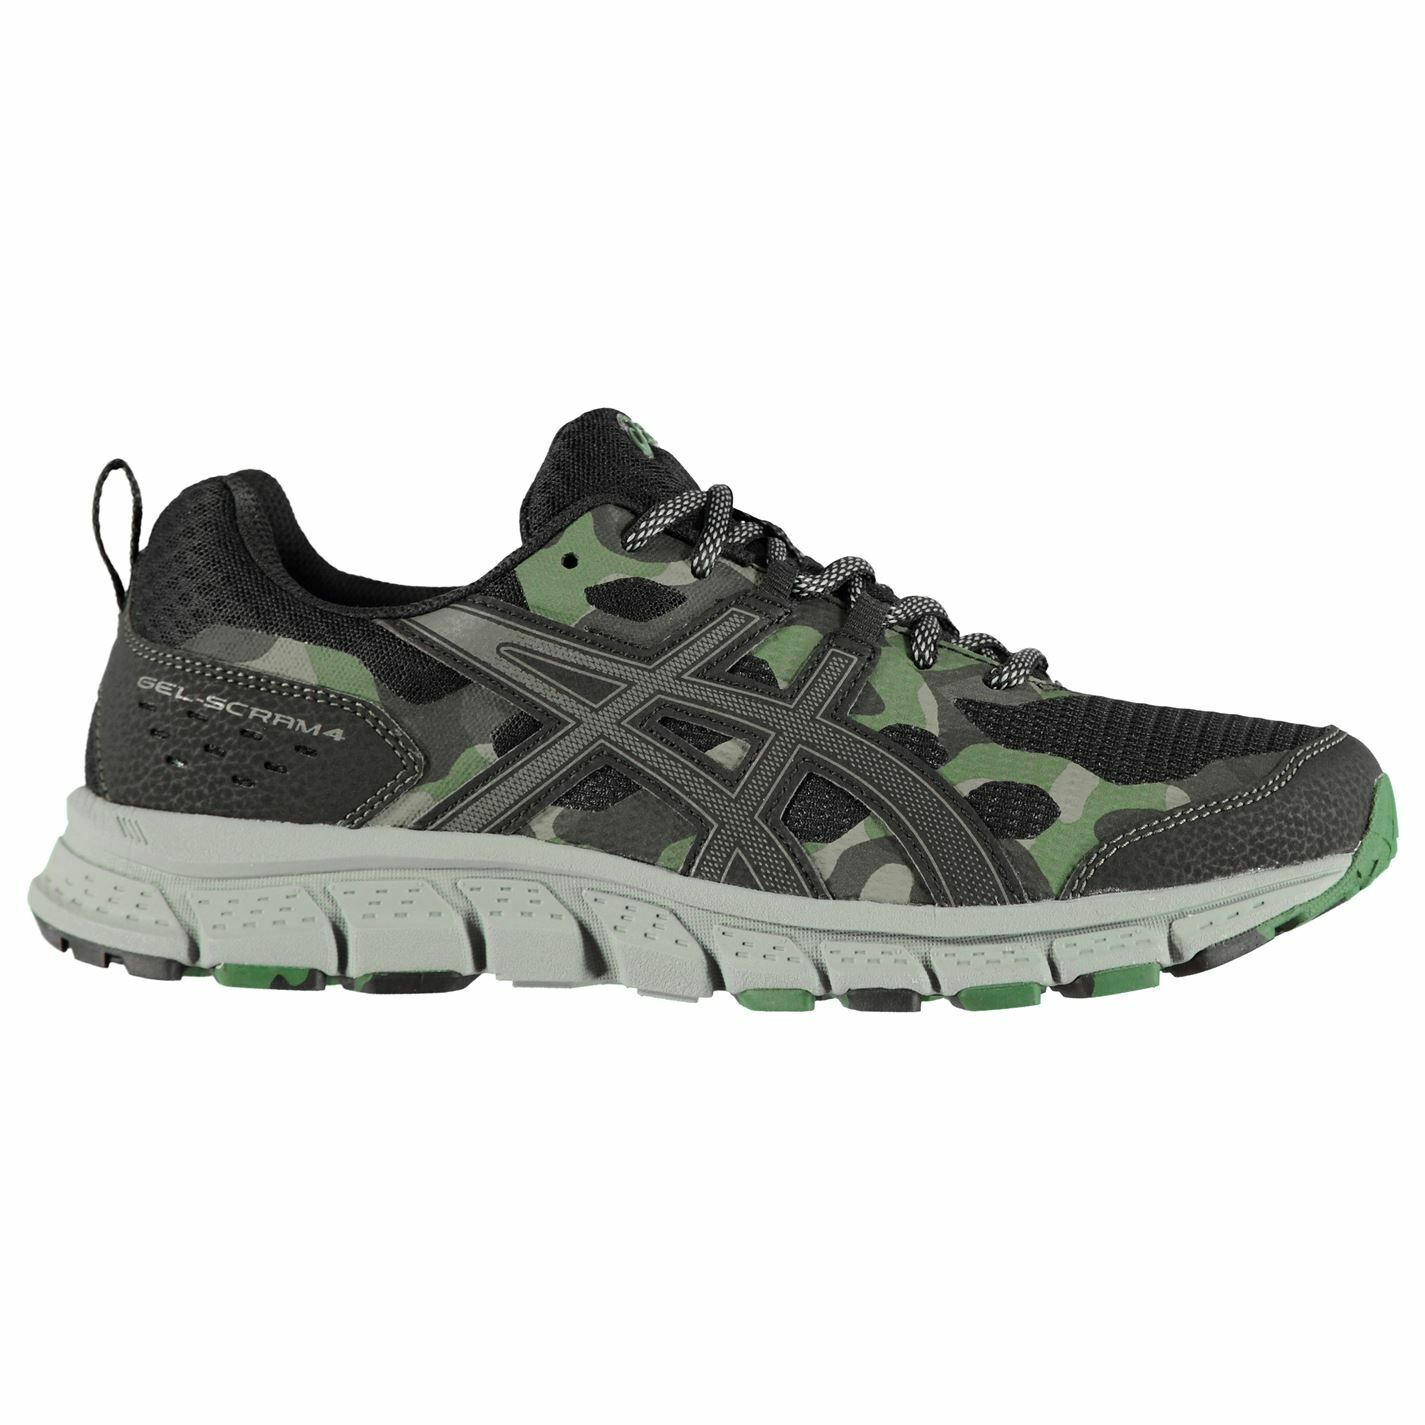 Asics Gel Scram 4 Trail Running shoes Mens Gents Laces Fastened